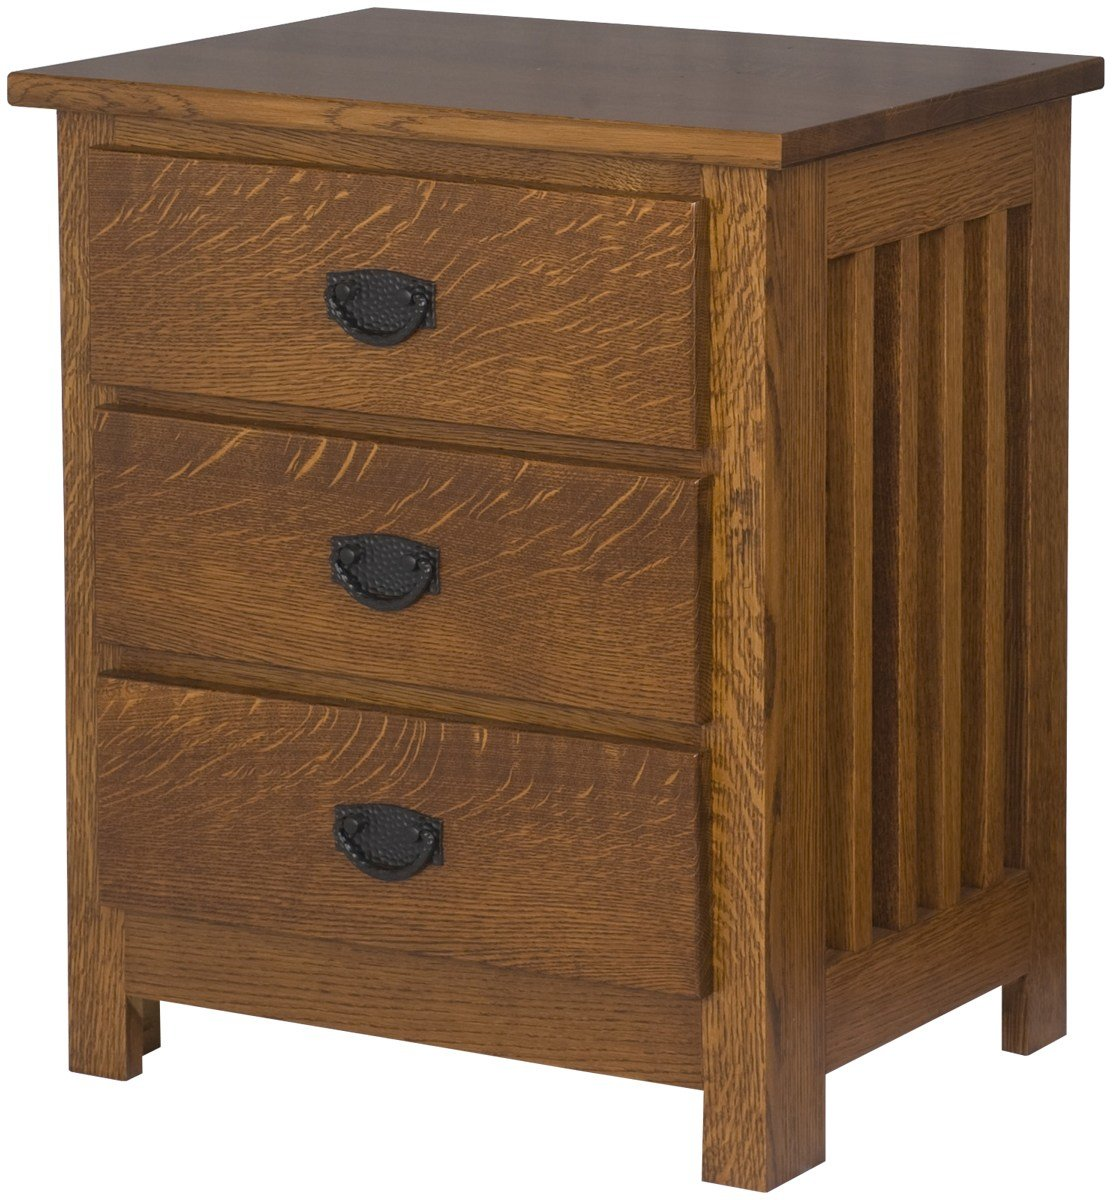 Best Mission Nightstand With Shelves Solid Wood Nightstand In With Pictures